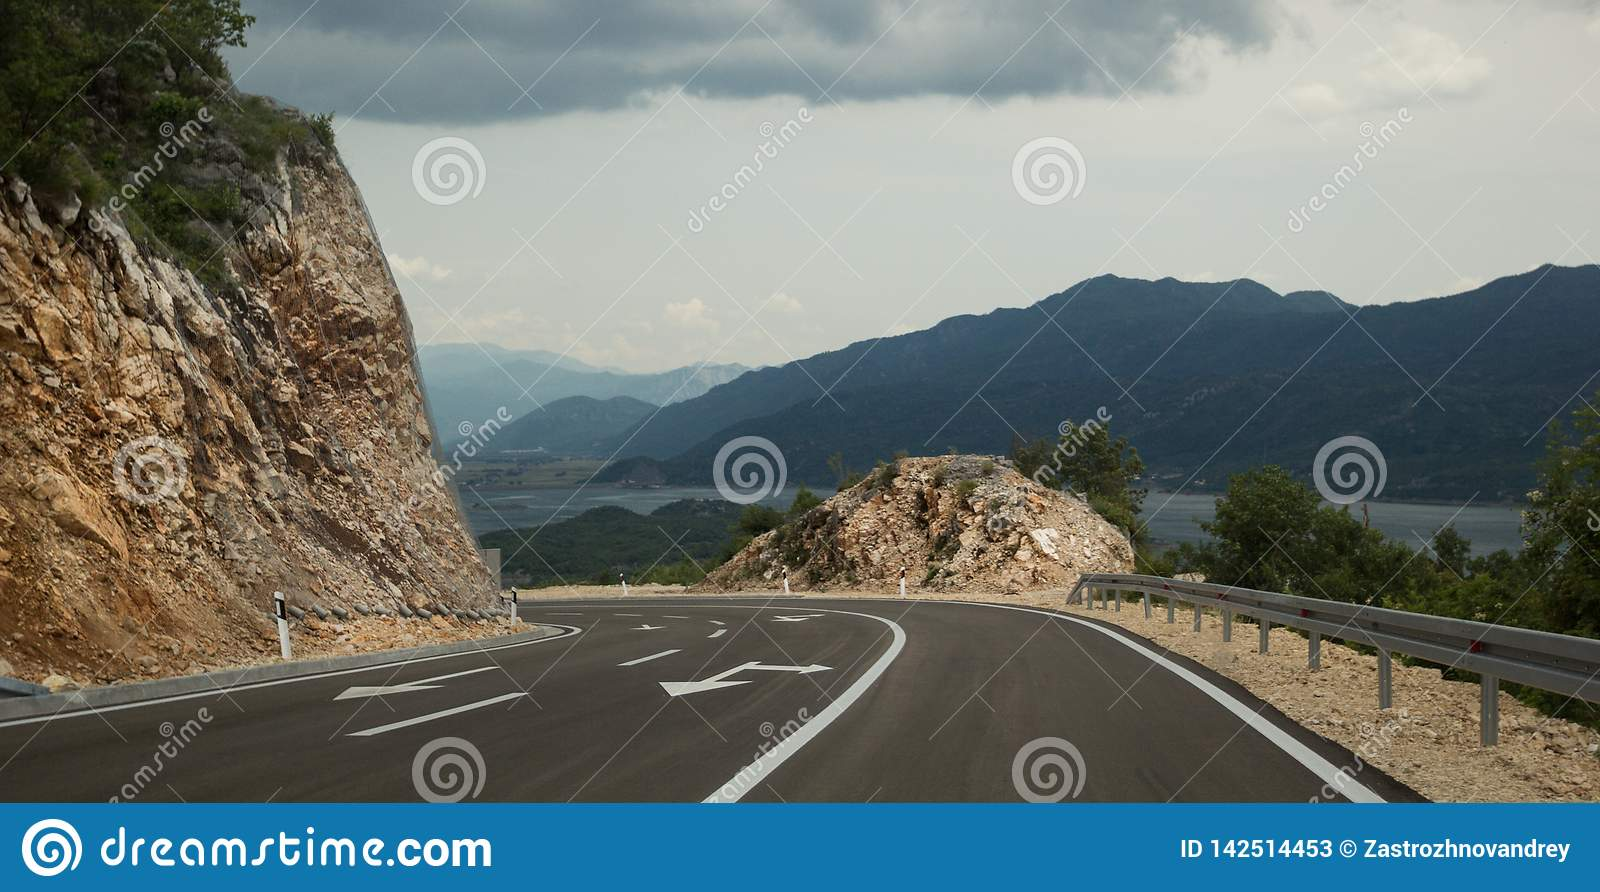 The road turns a mountain. Pointers on the pavement. Mountains, lake and clouds in the background